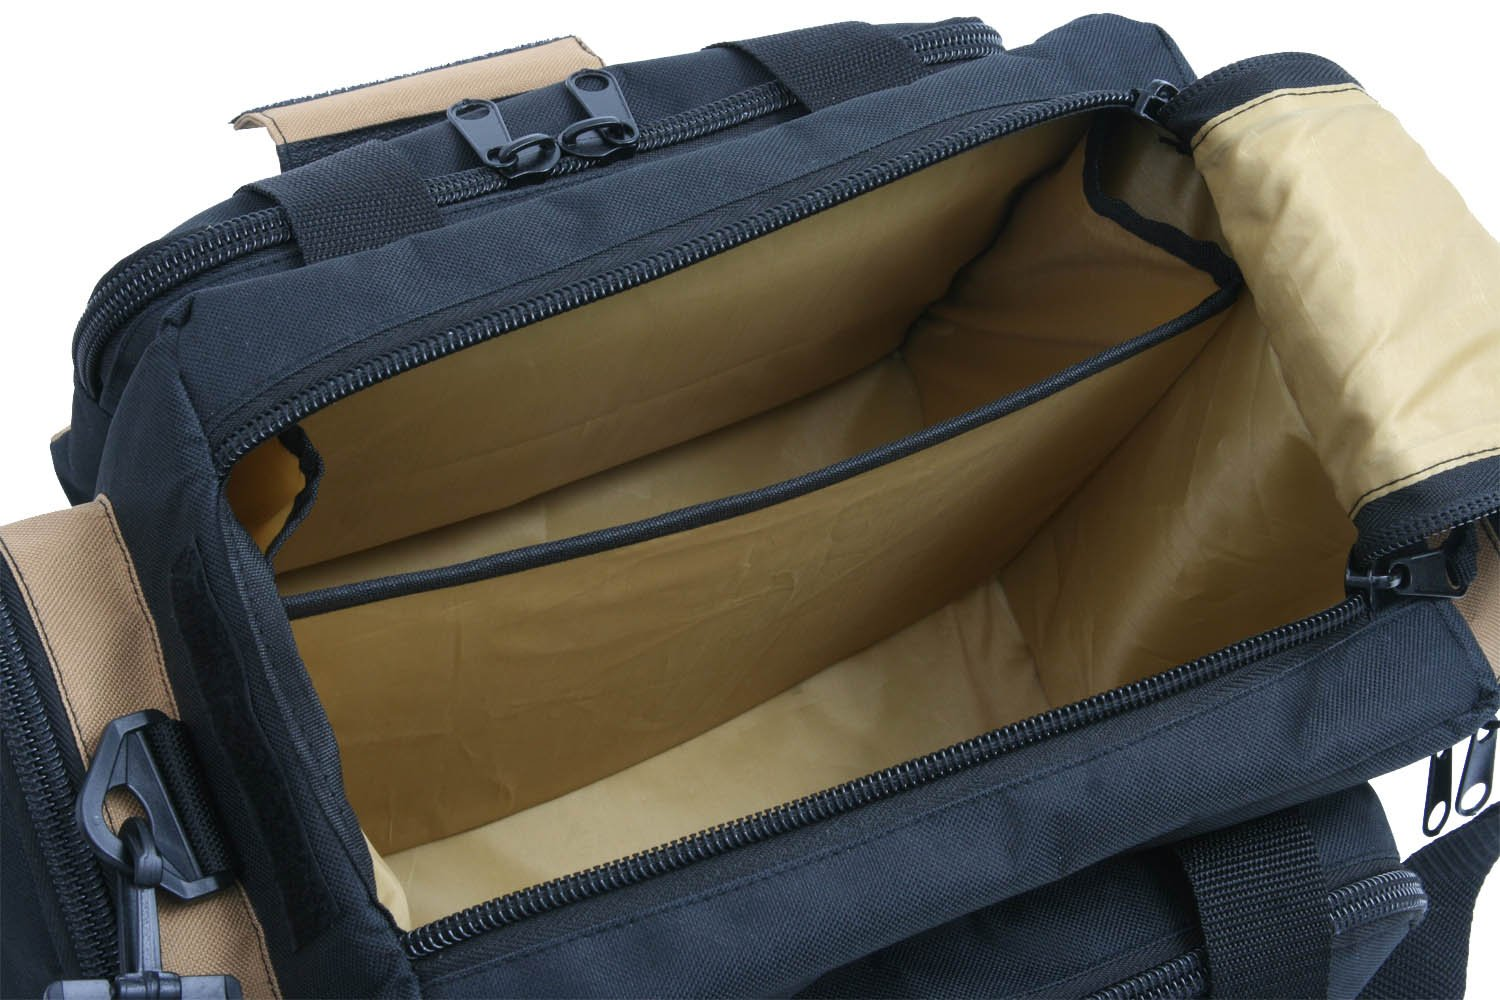 Outdoor Connection BGRNG1-28110 Deluxe Range Bag (Tan/Black) by Outdoor Connection (Image #5)